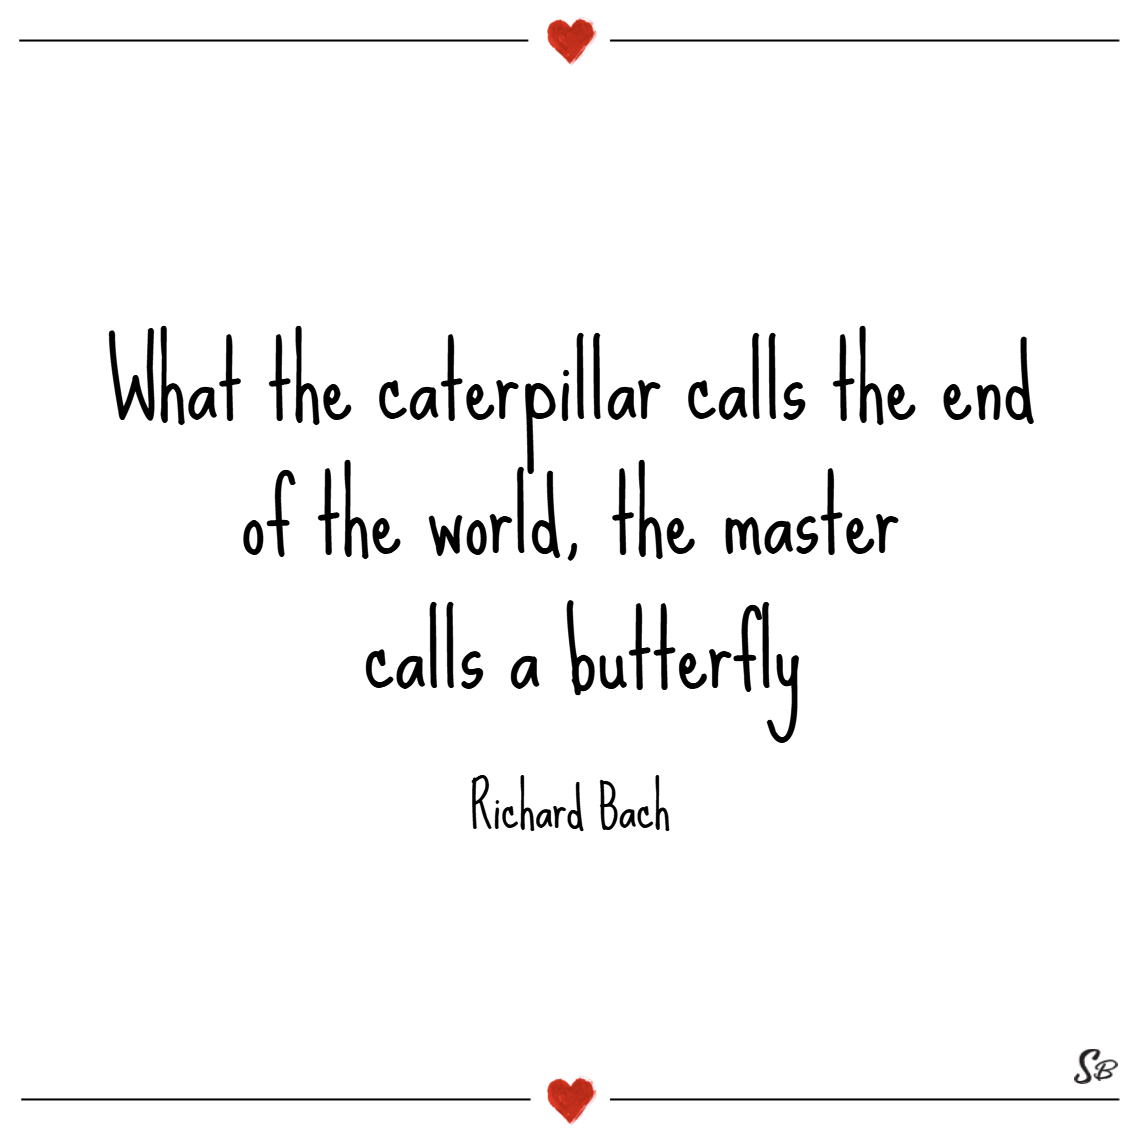 What the caterpillar calls the end of the world, the master calls a butterfly. – richard bach